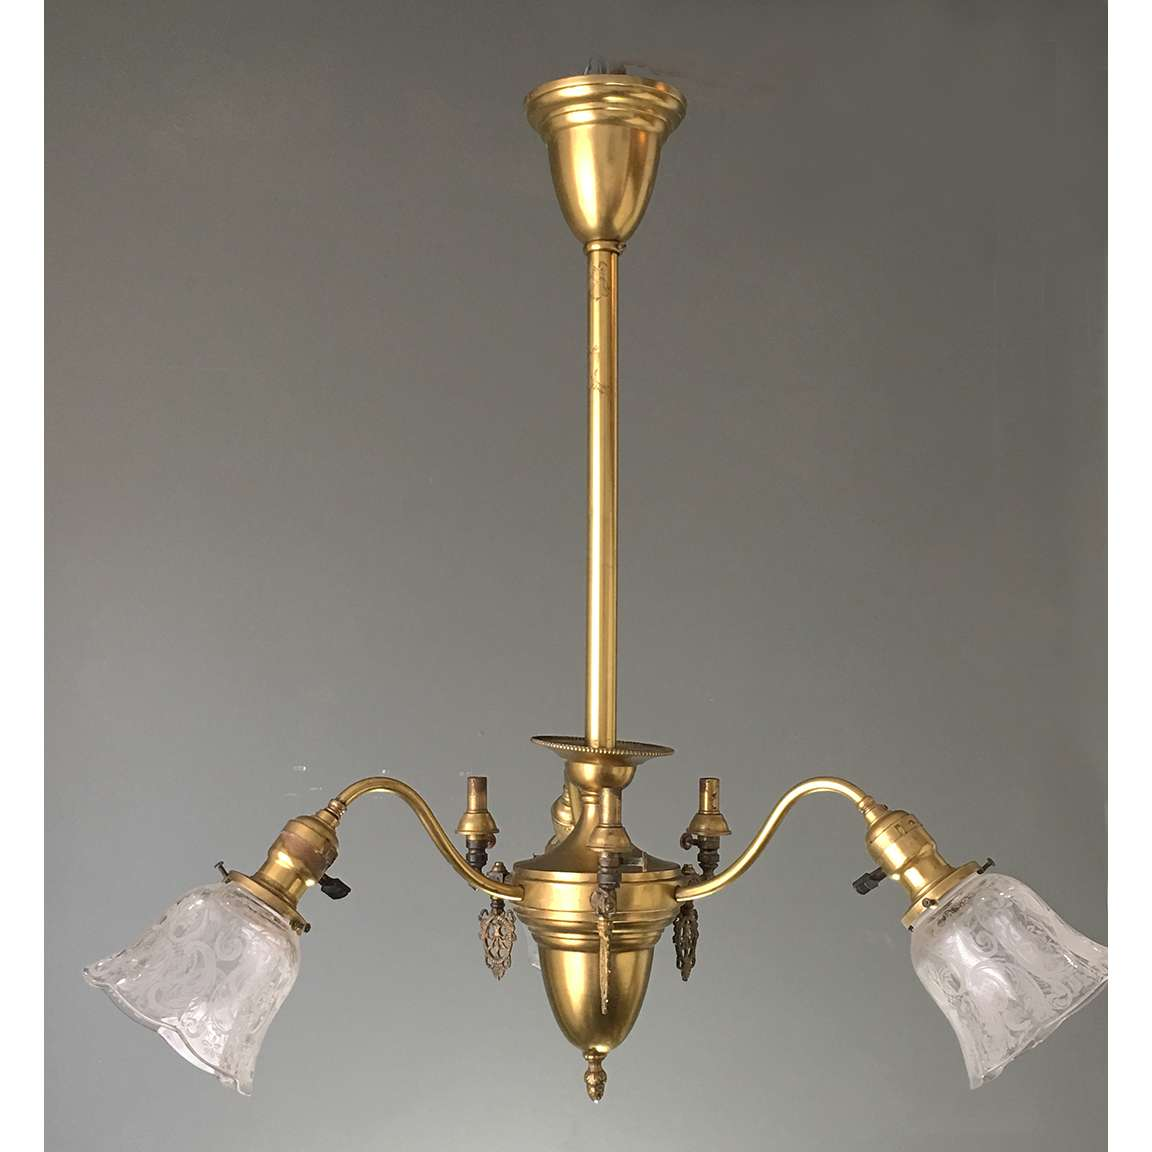 Historic Houseparts Inc Antique Ceiling Fixtures Antique Brass Gas Electric Combination Ceiling Light Fixture With Etched Shades